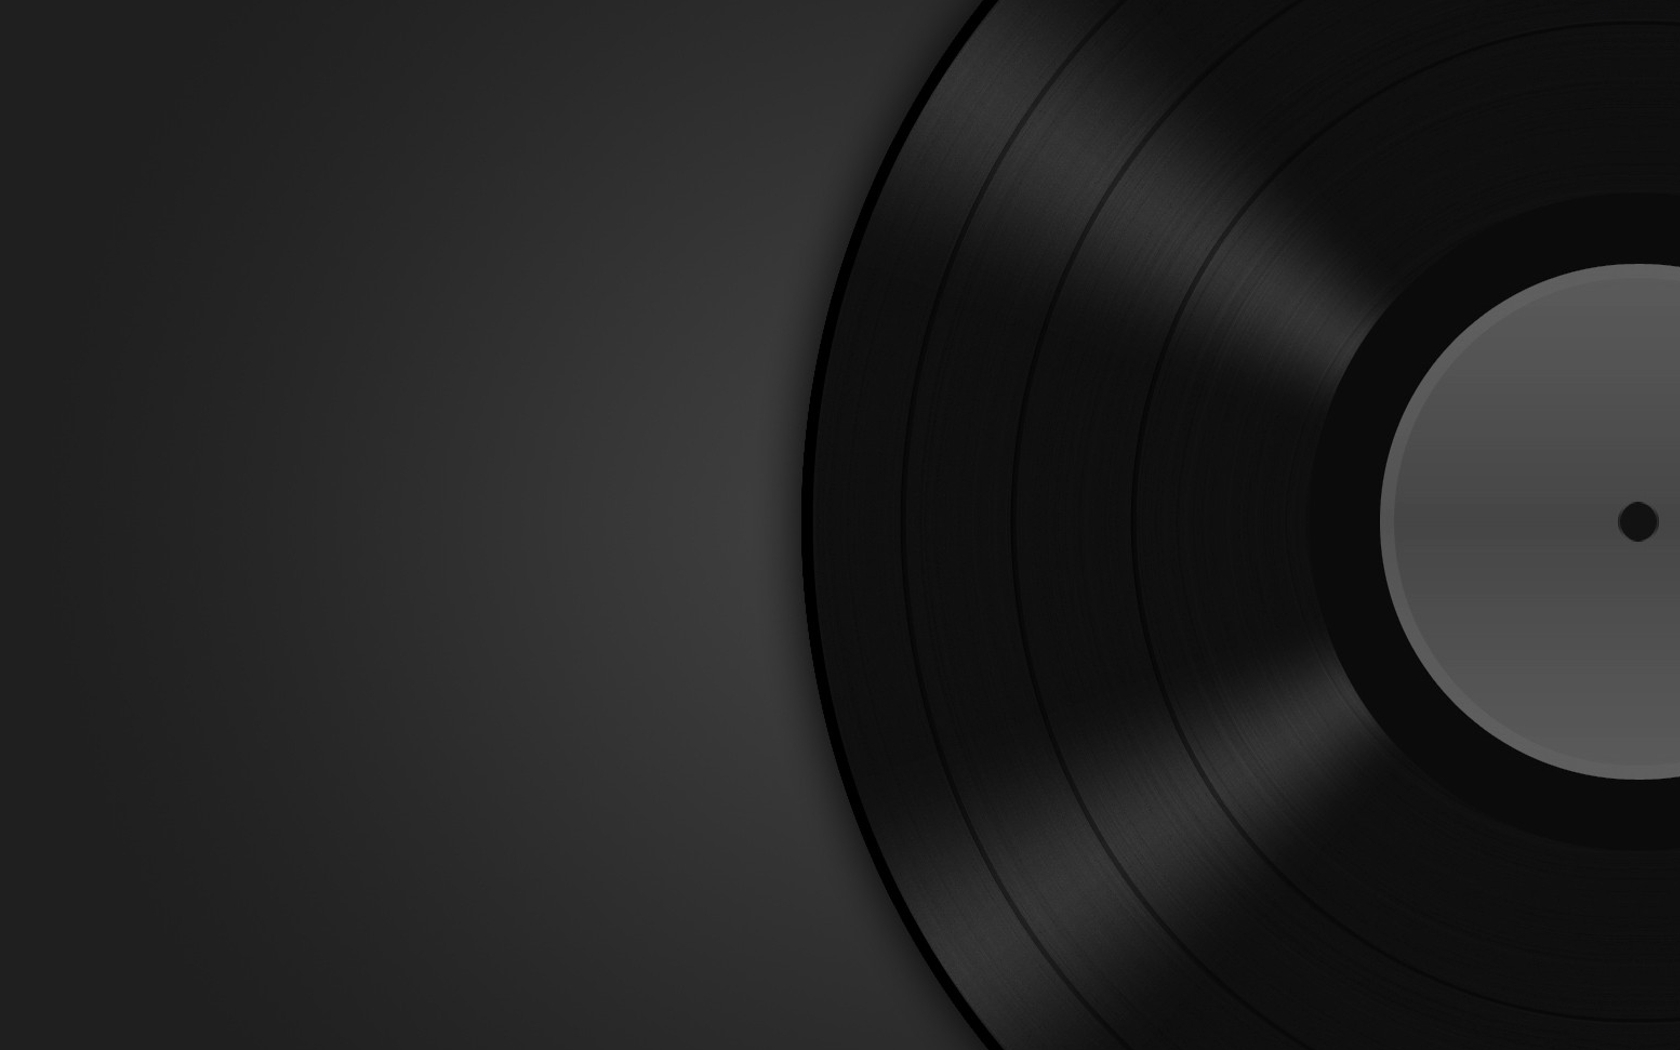 music wallpaper 41678 1680x1050 px ~ hdwallsource